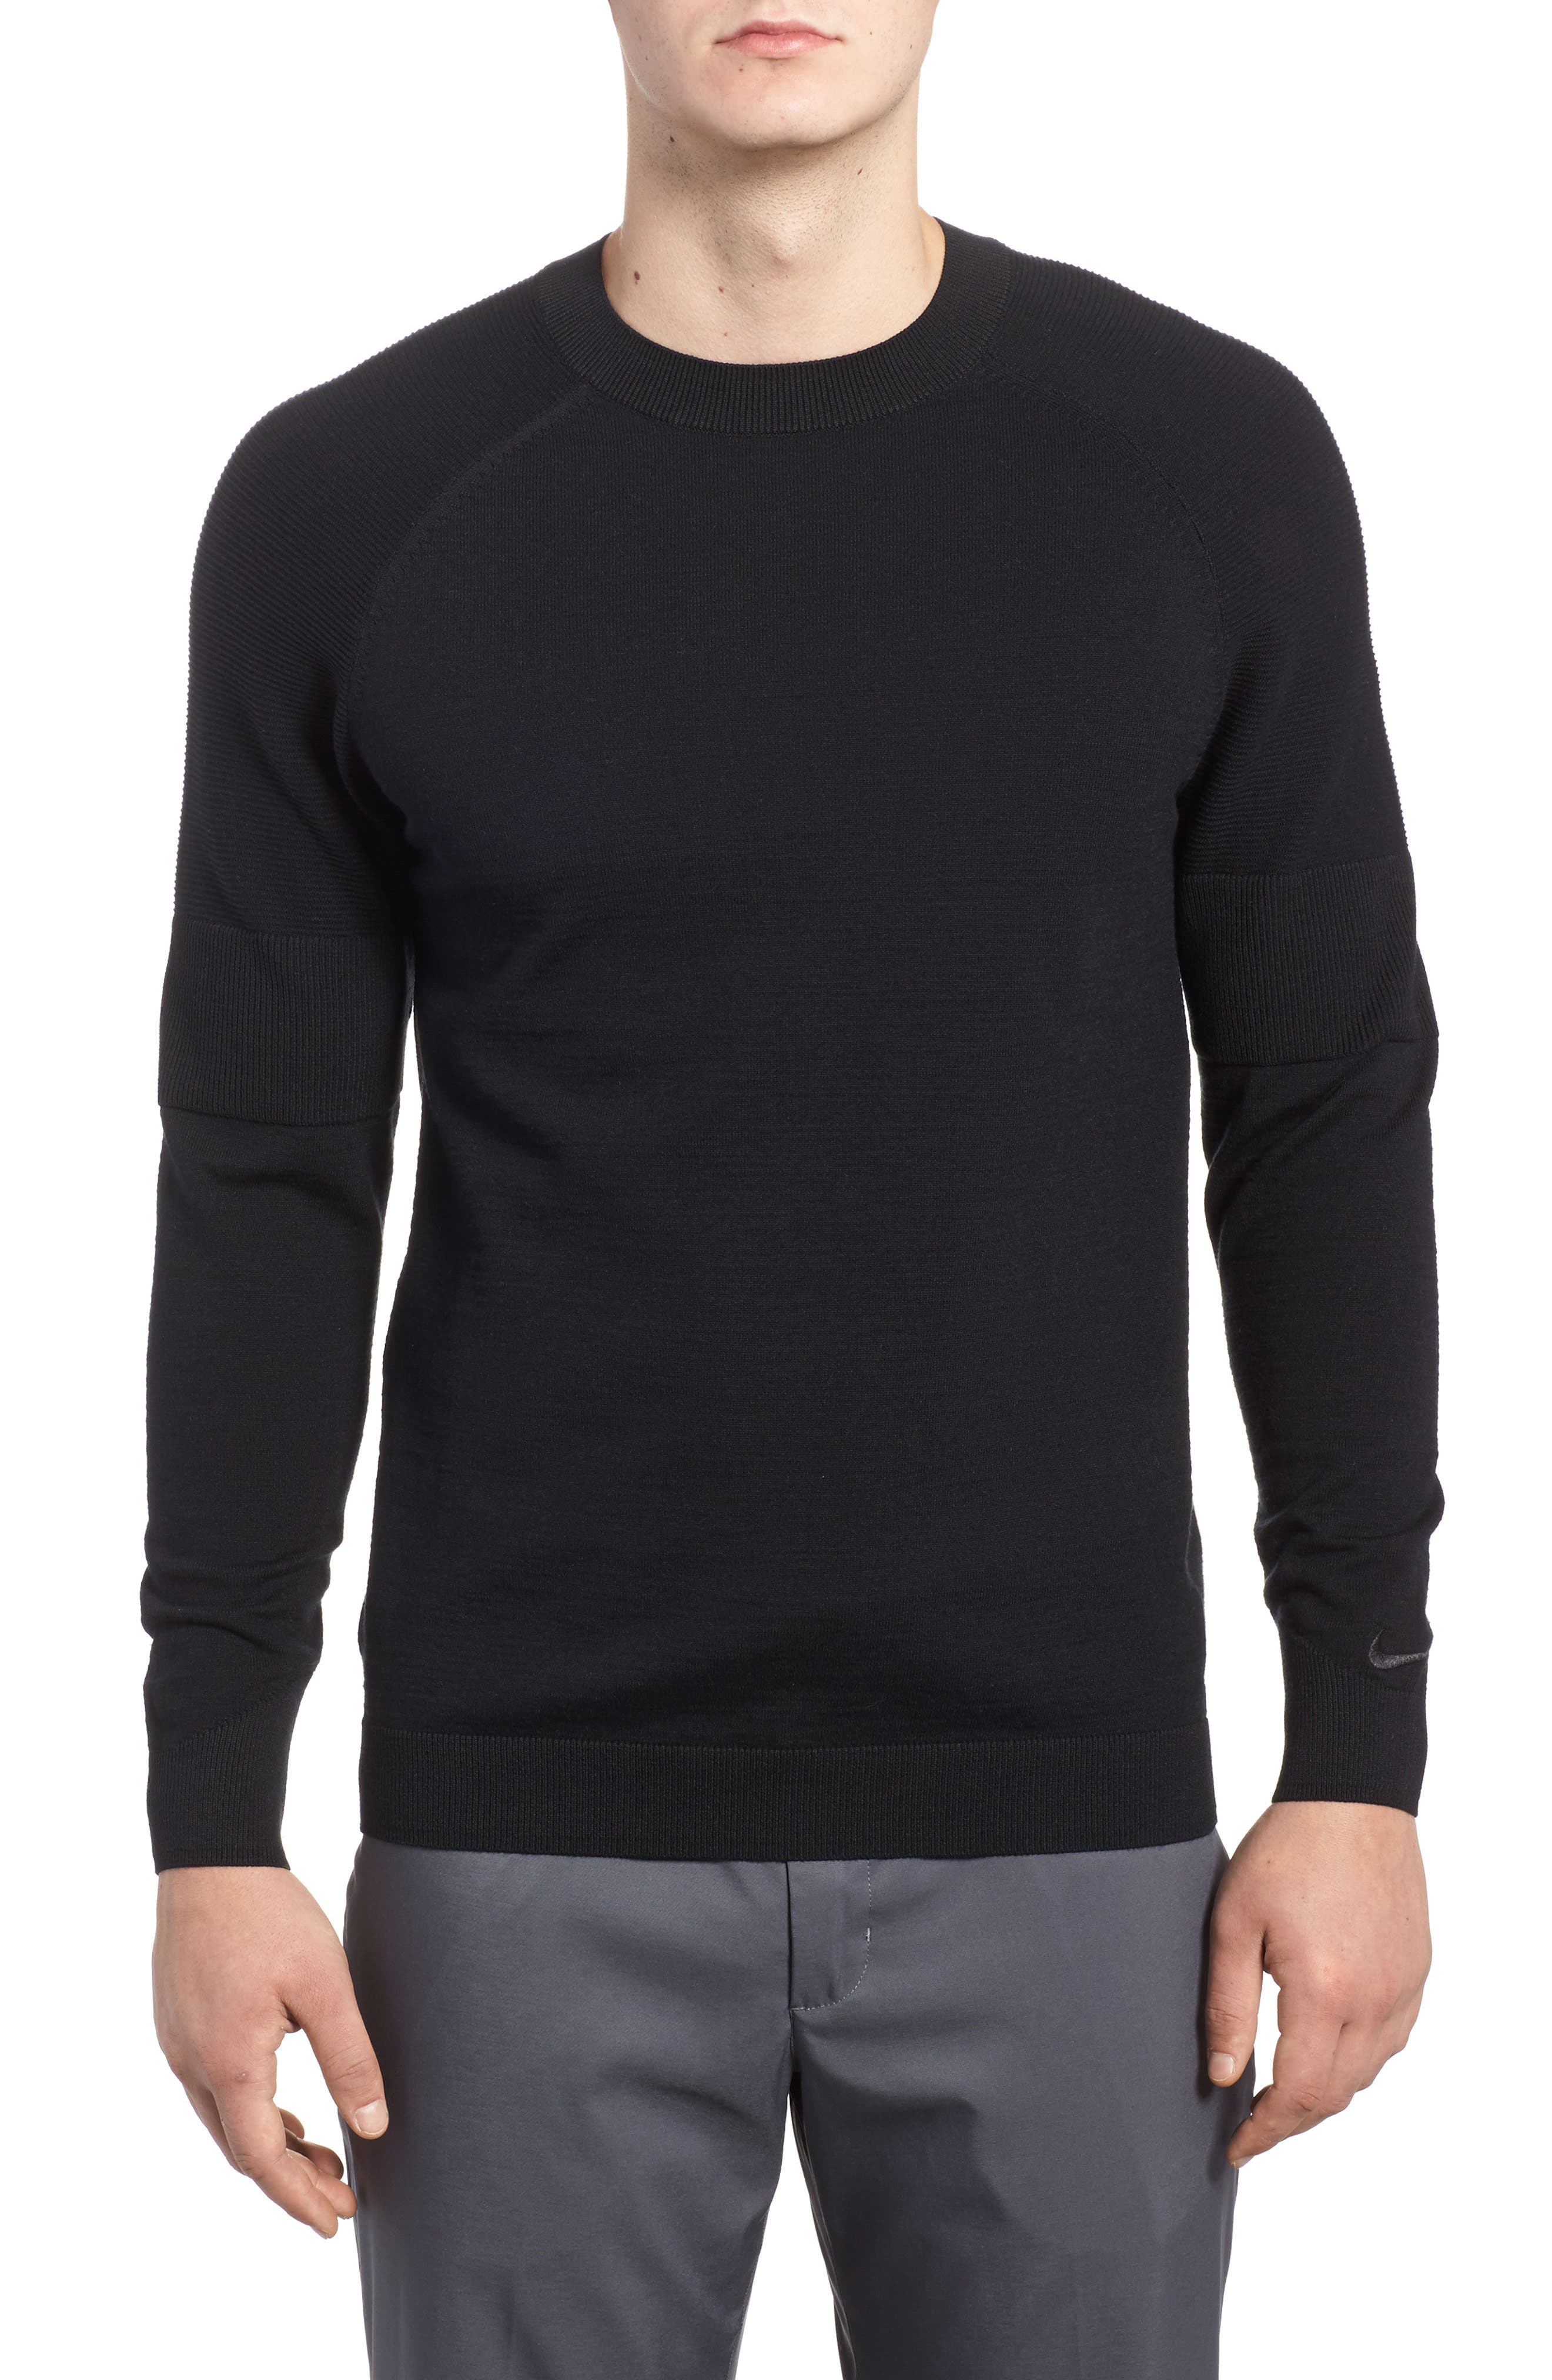 TW Cotton Blend Sweatshirt,                             Main thumbnail 1, color,